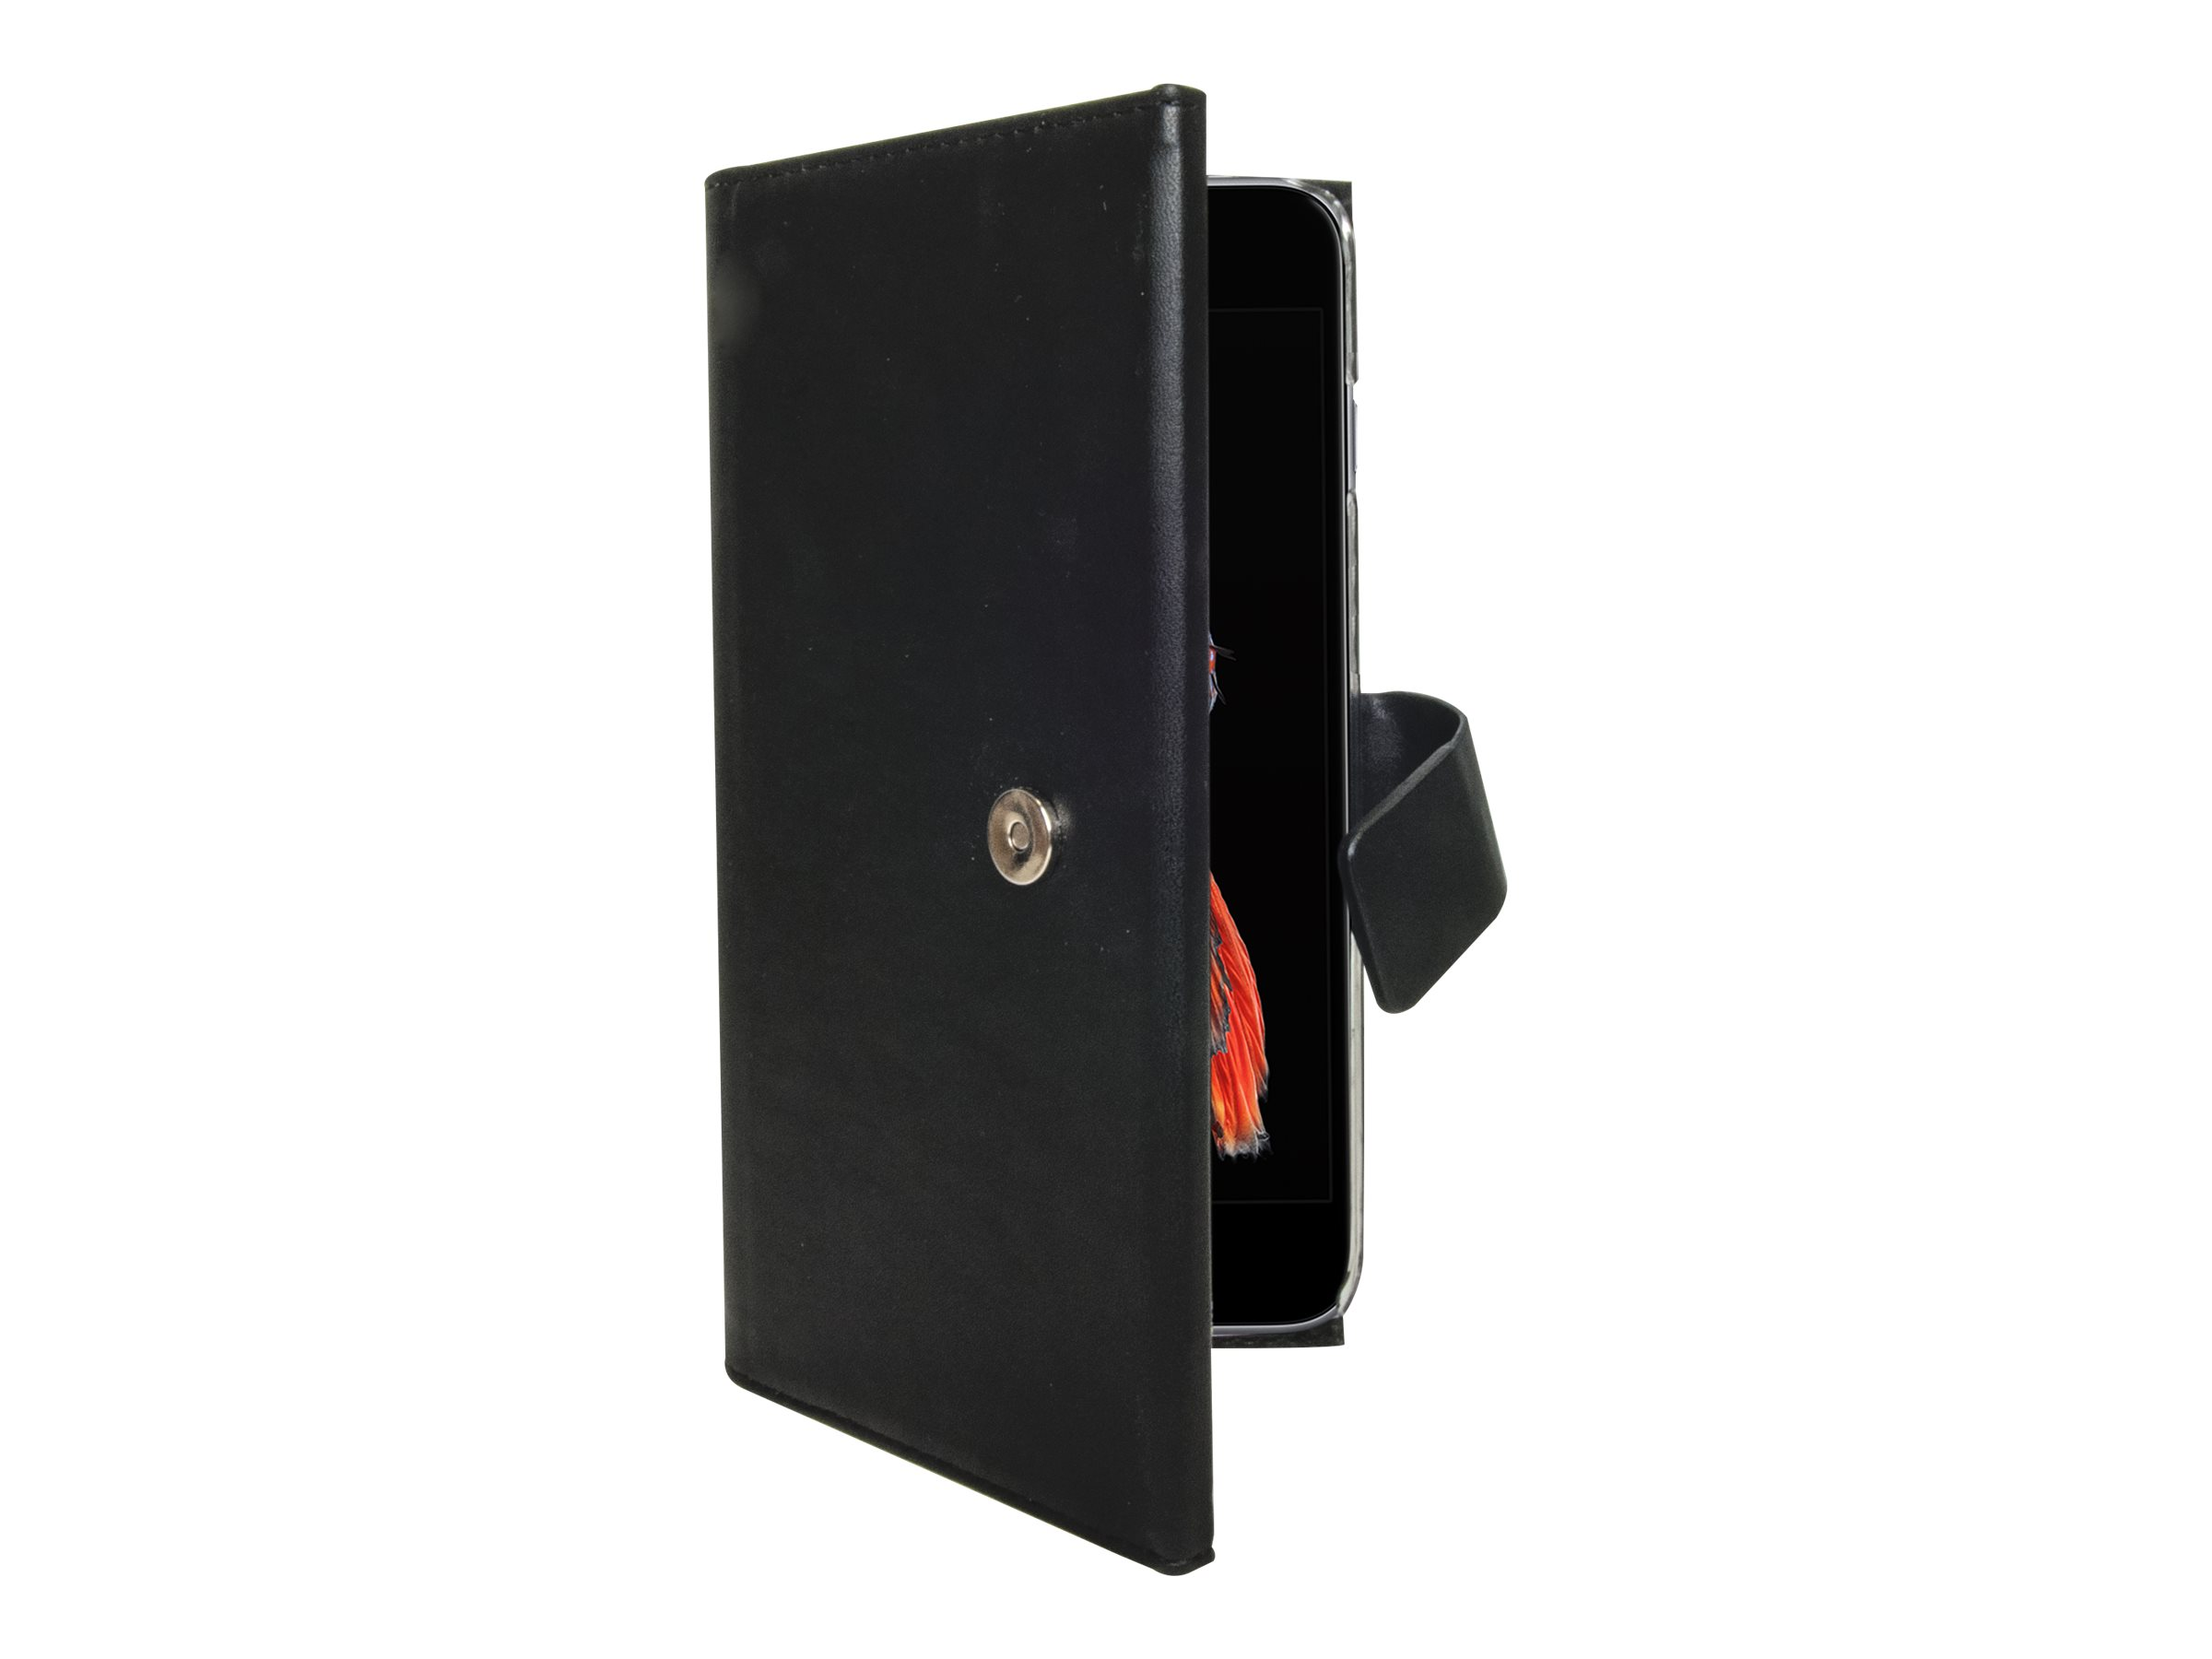 Muvit Magnet Wallet - Protection à rabat pour iPhone 6, 6s - noir